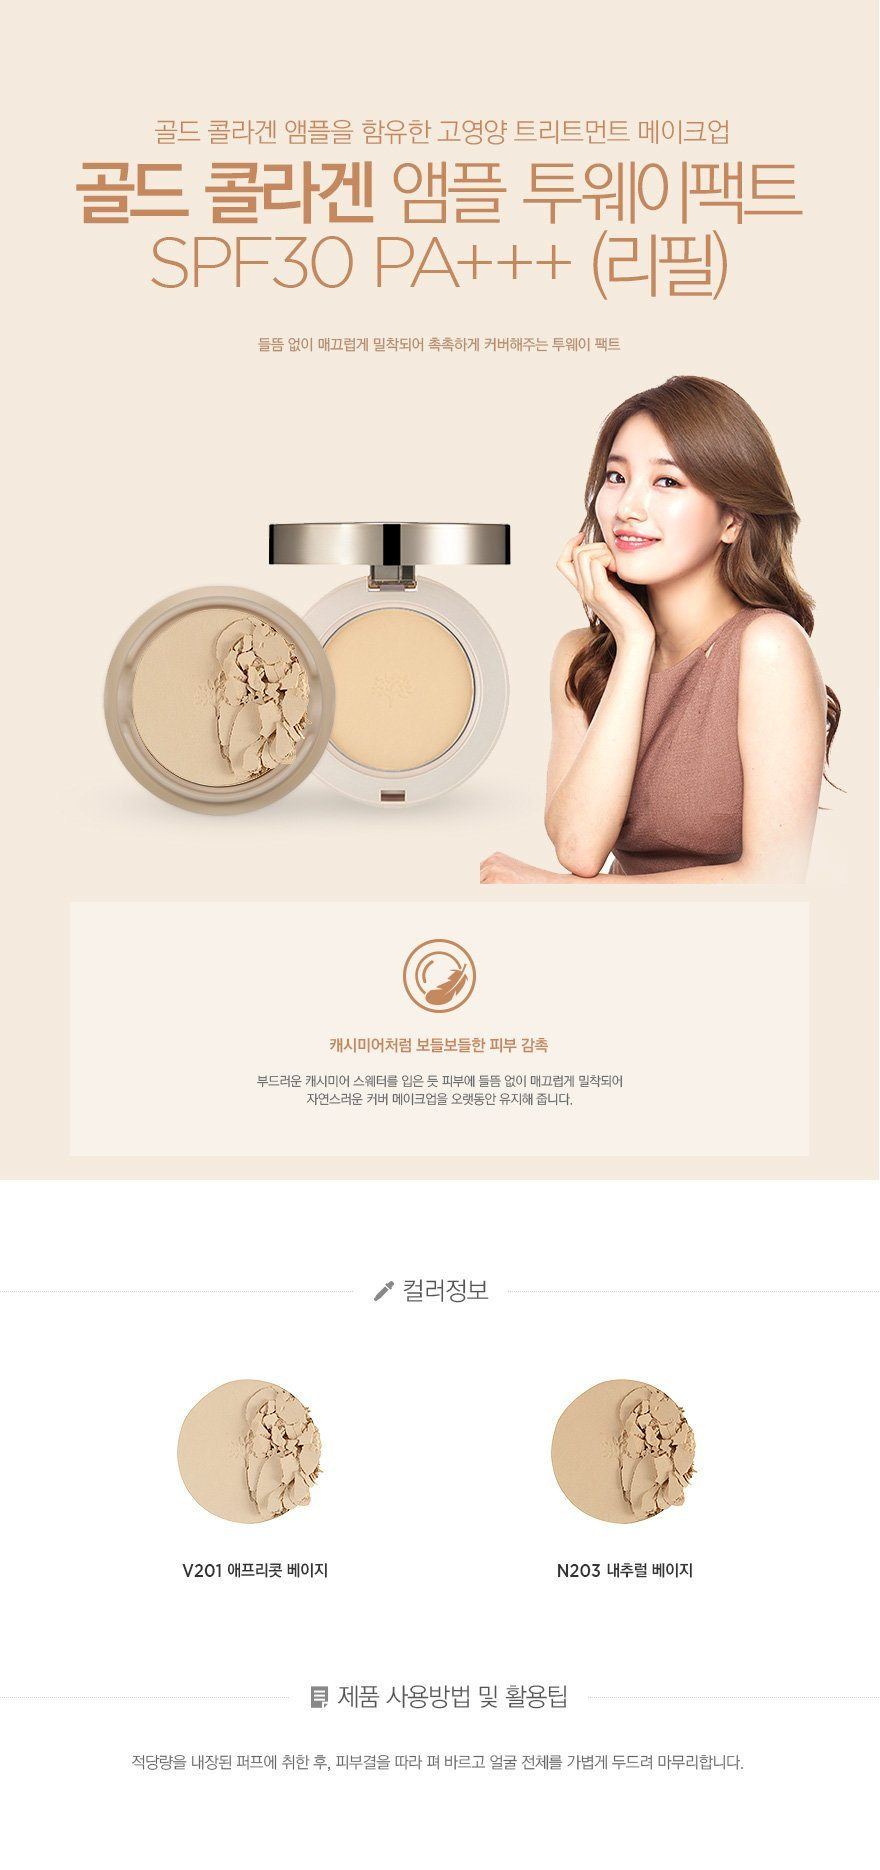 The Face Shop Gold Collagen Ampoule Two Way Pact SPF 30 PA+++ 9.5g